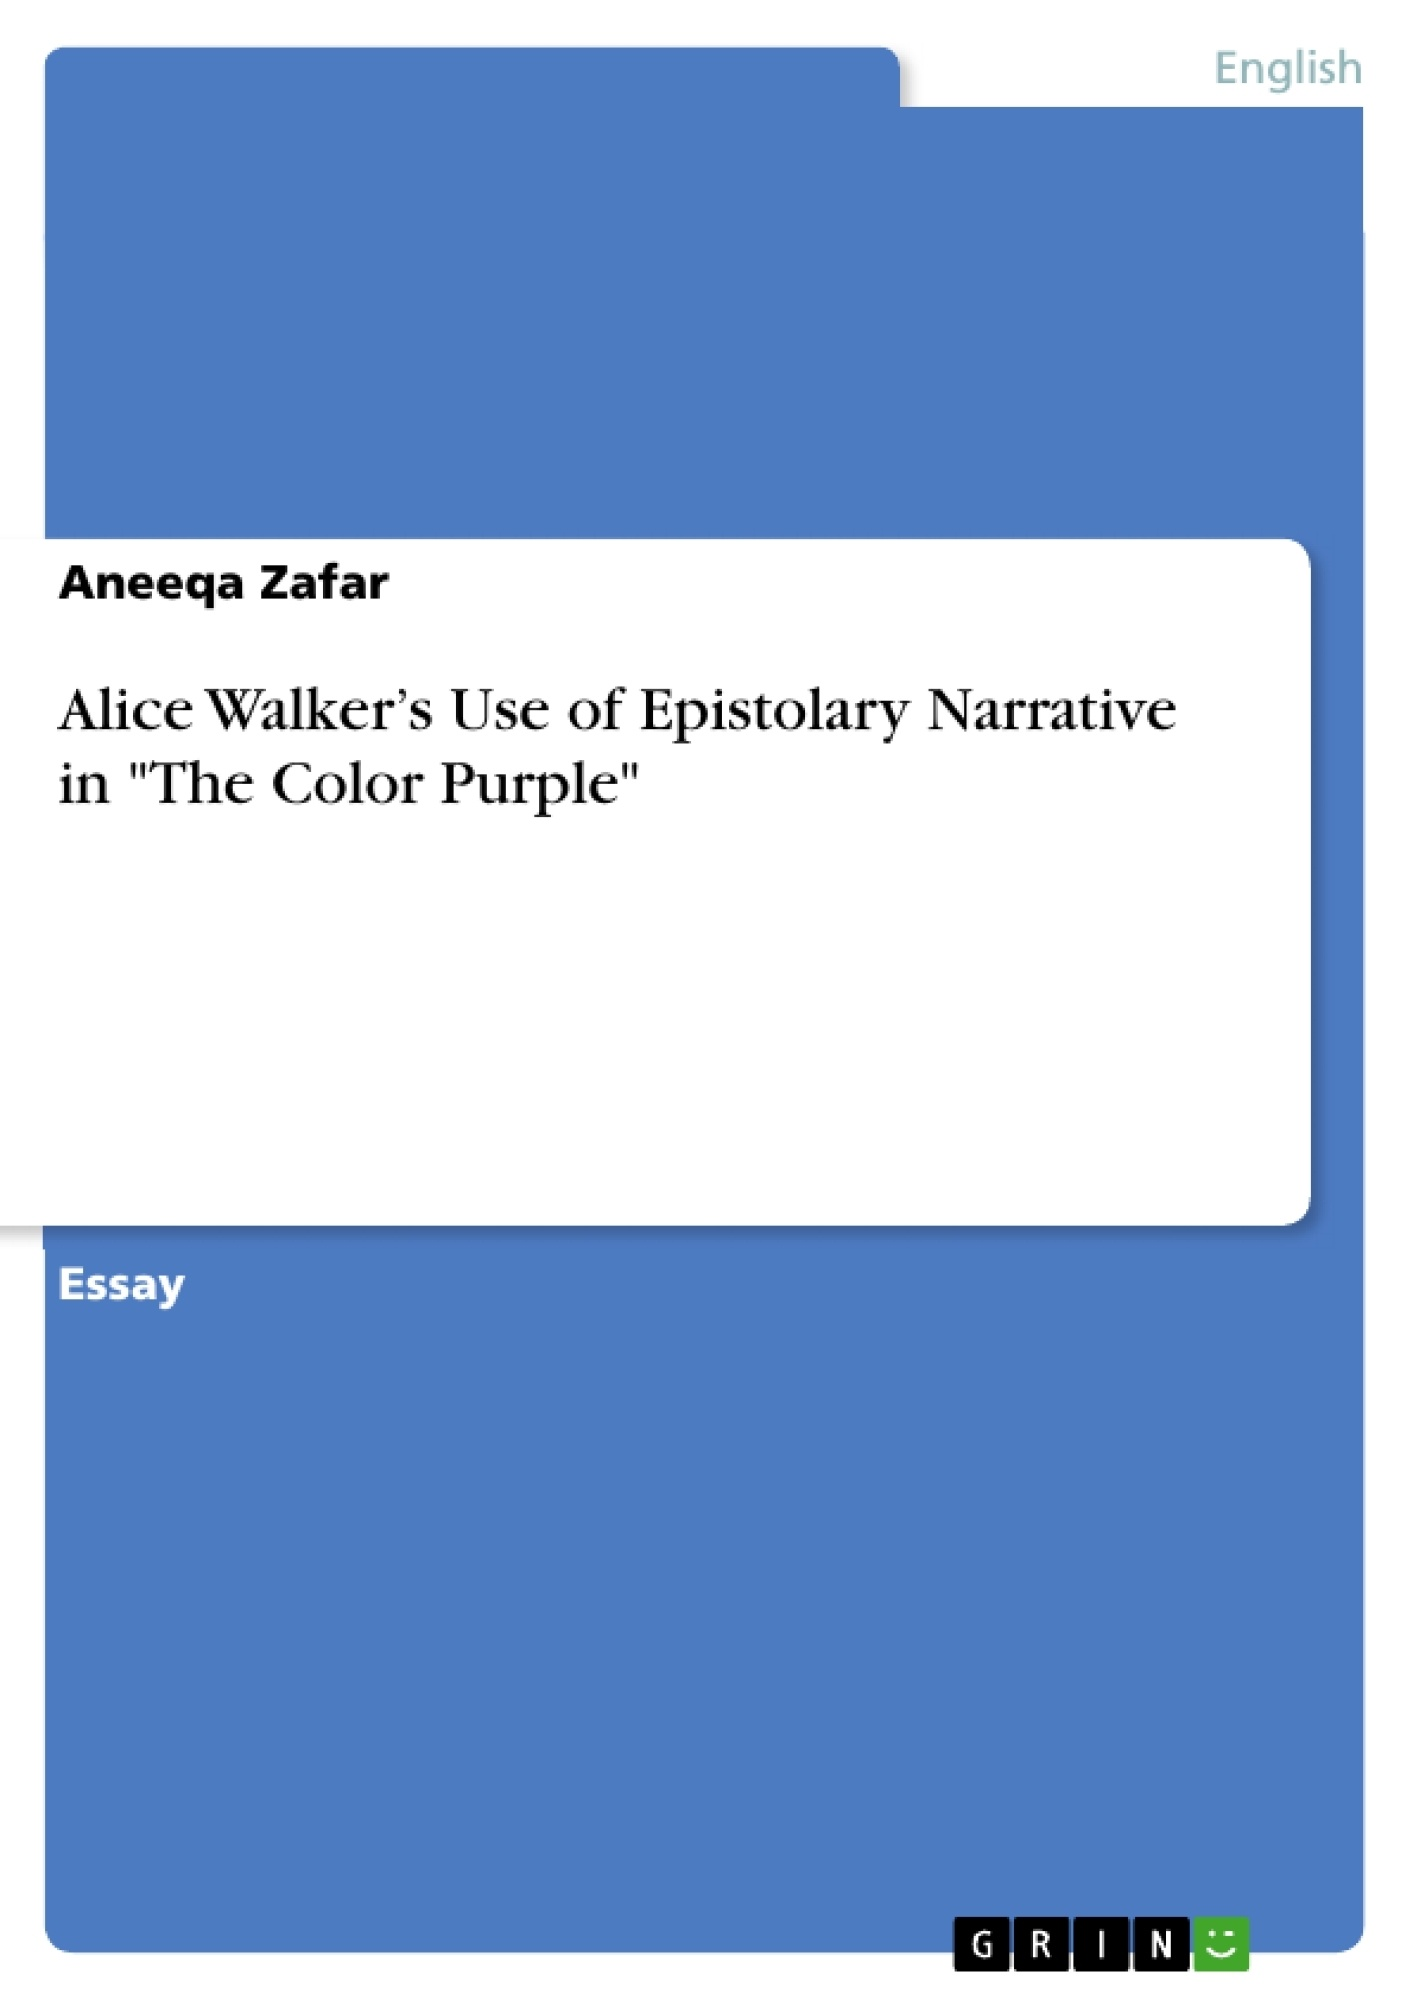 alice walker s use of epistolary narrative in the color purple upload your own papers earn money and win an iphone 7